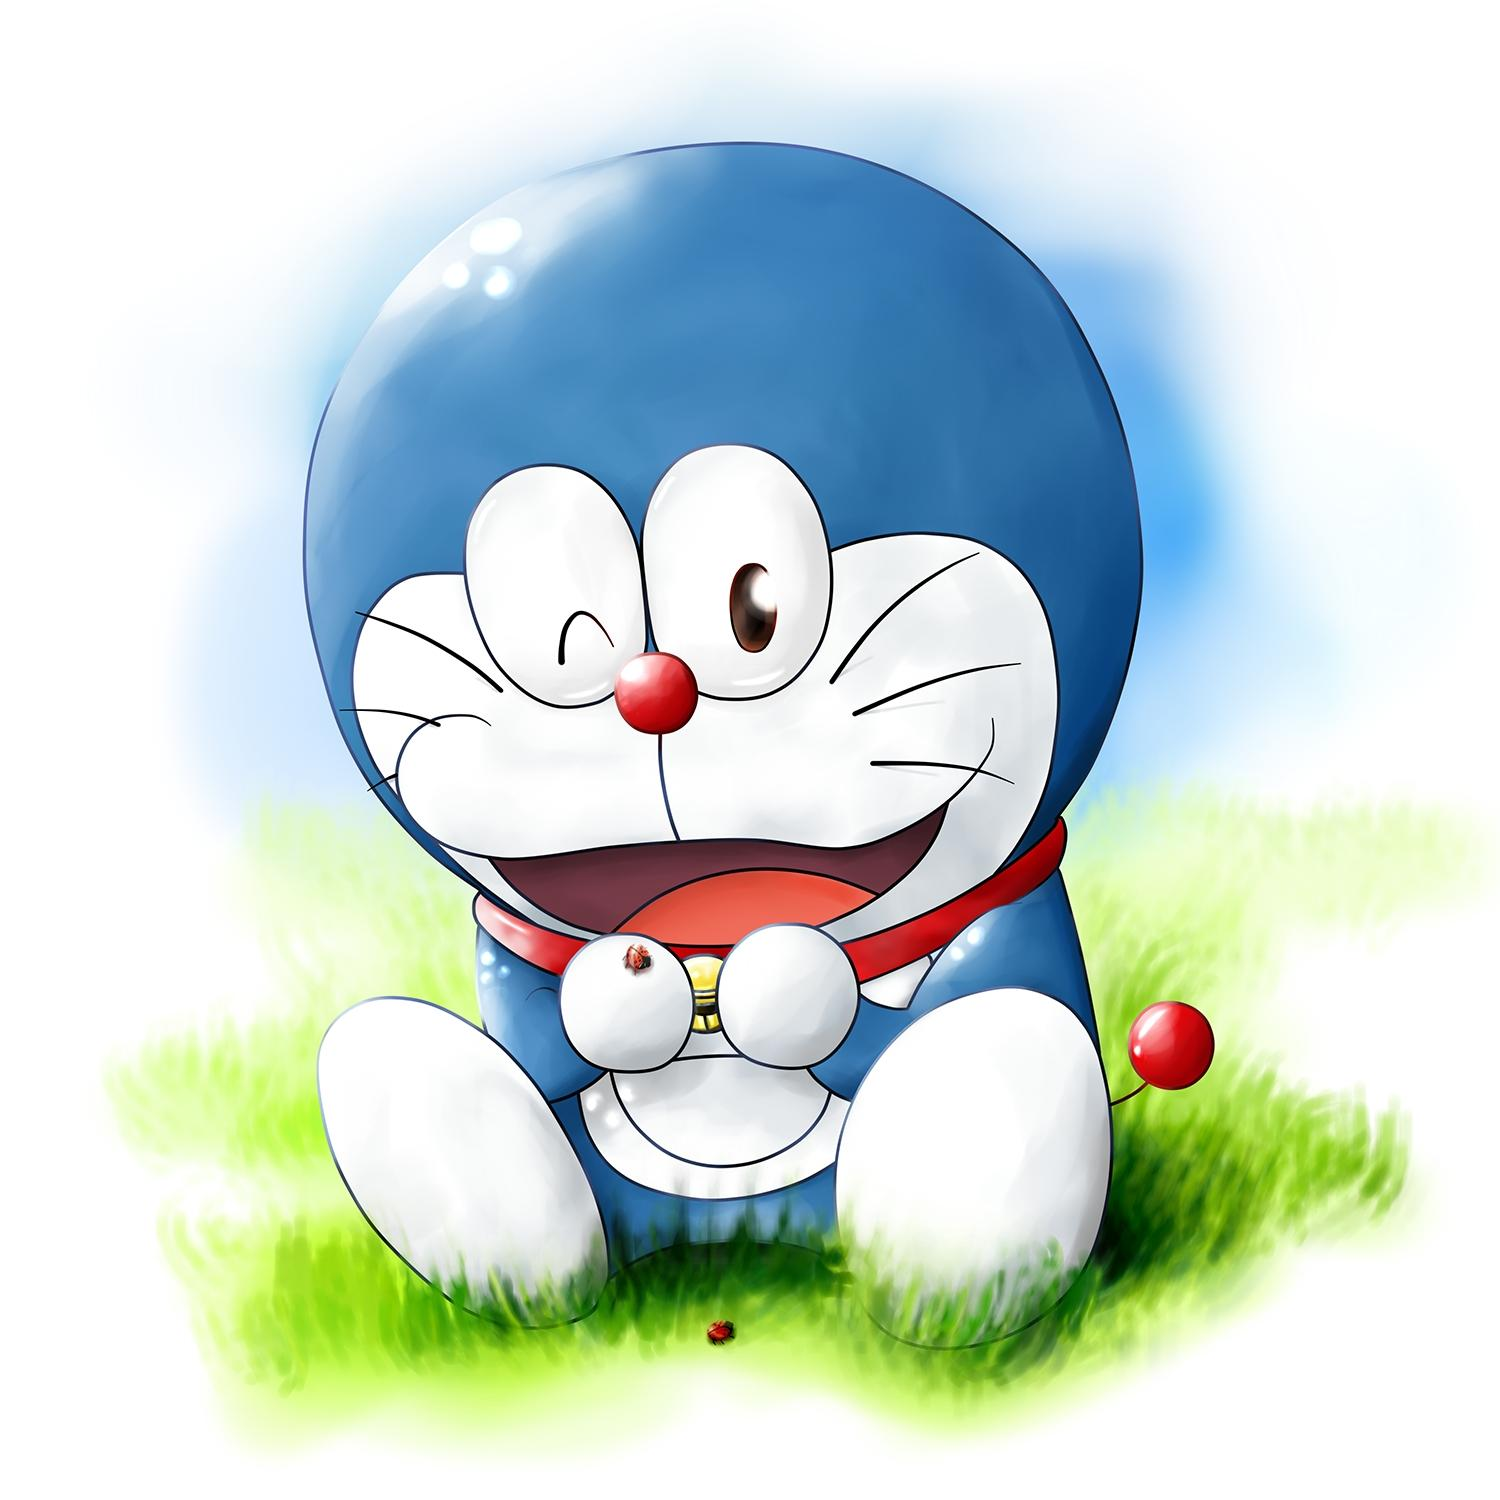 Doraemon Wallpaper For Desktop - Doraemon Hd (#276611) - HD